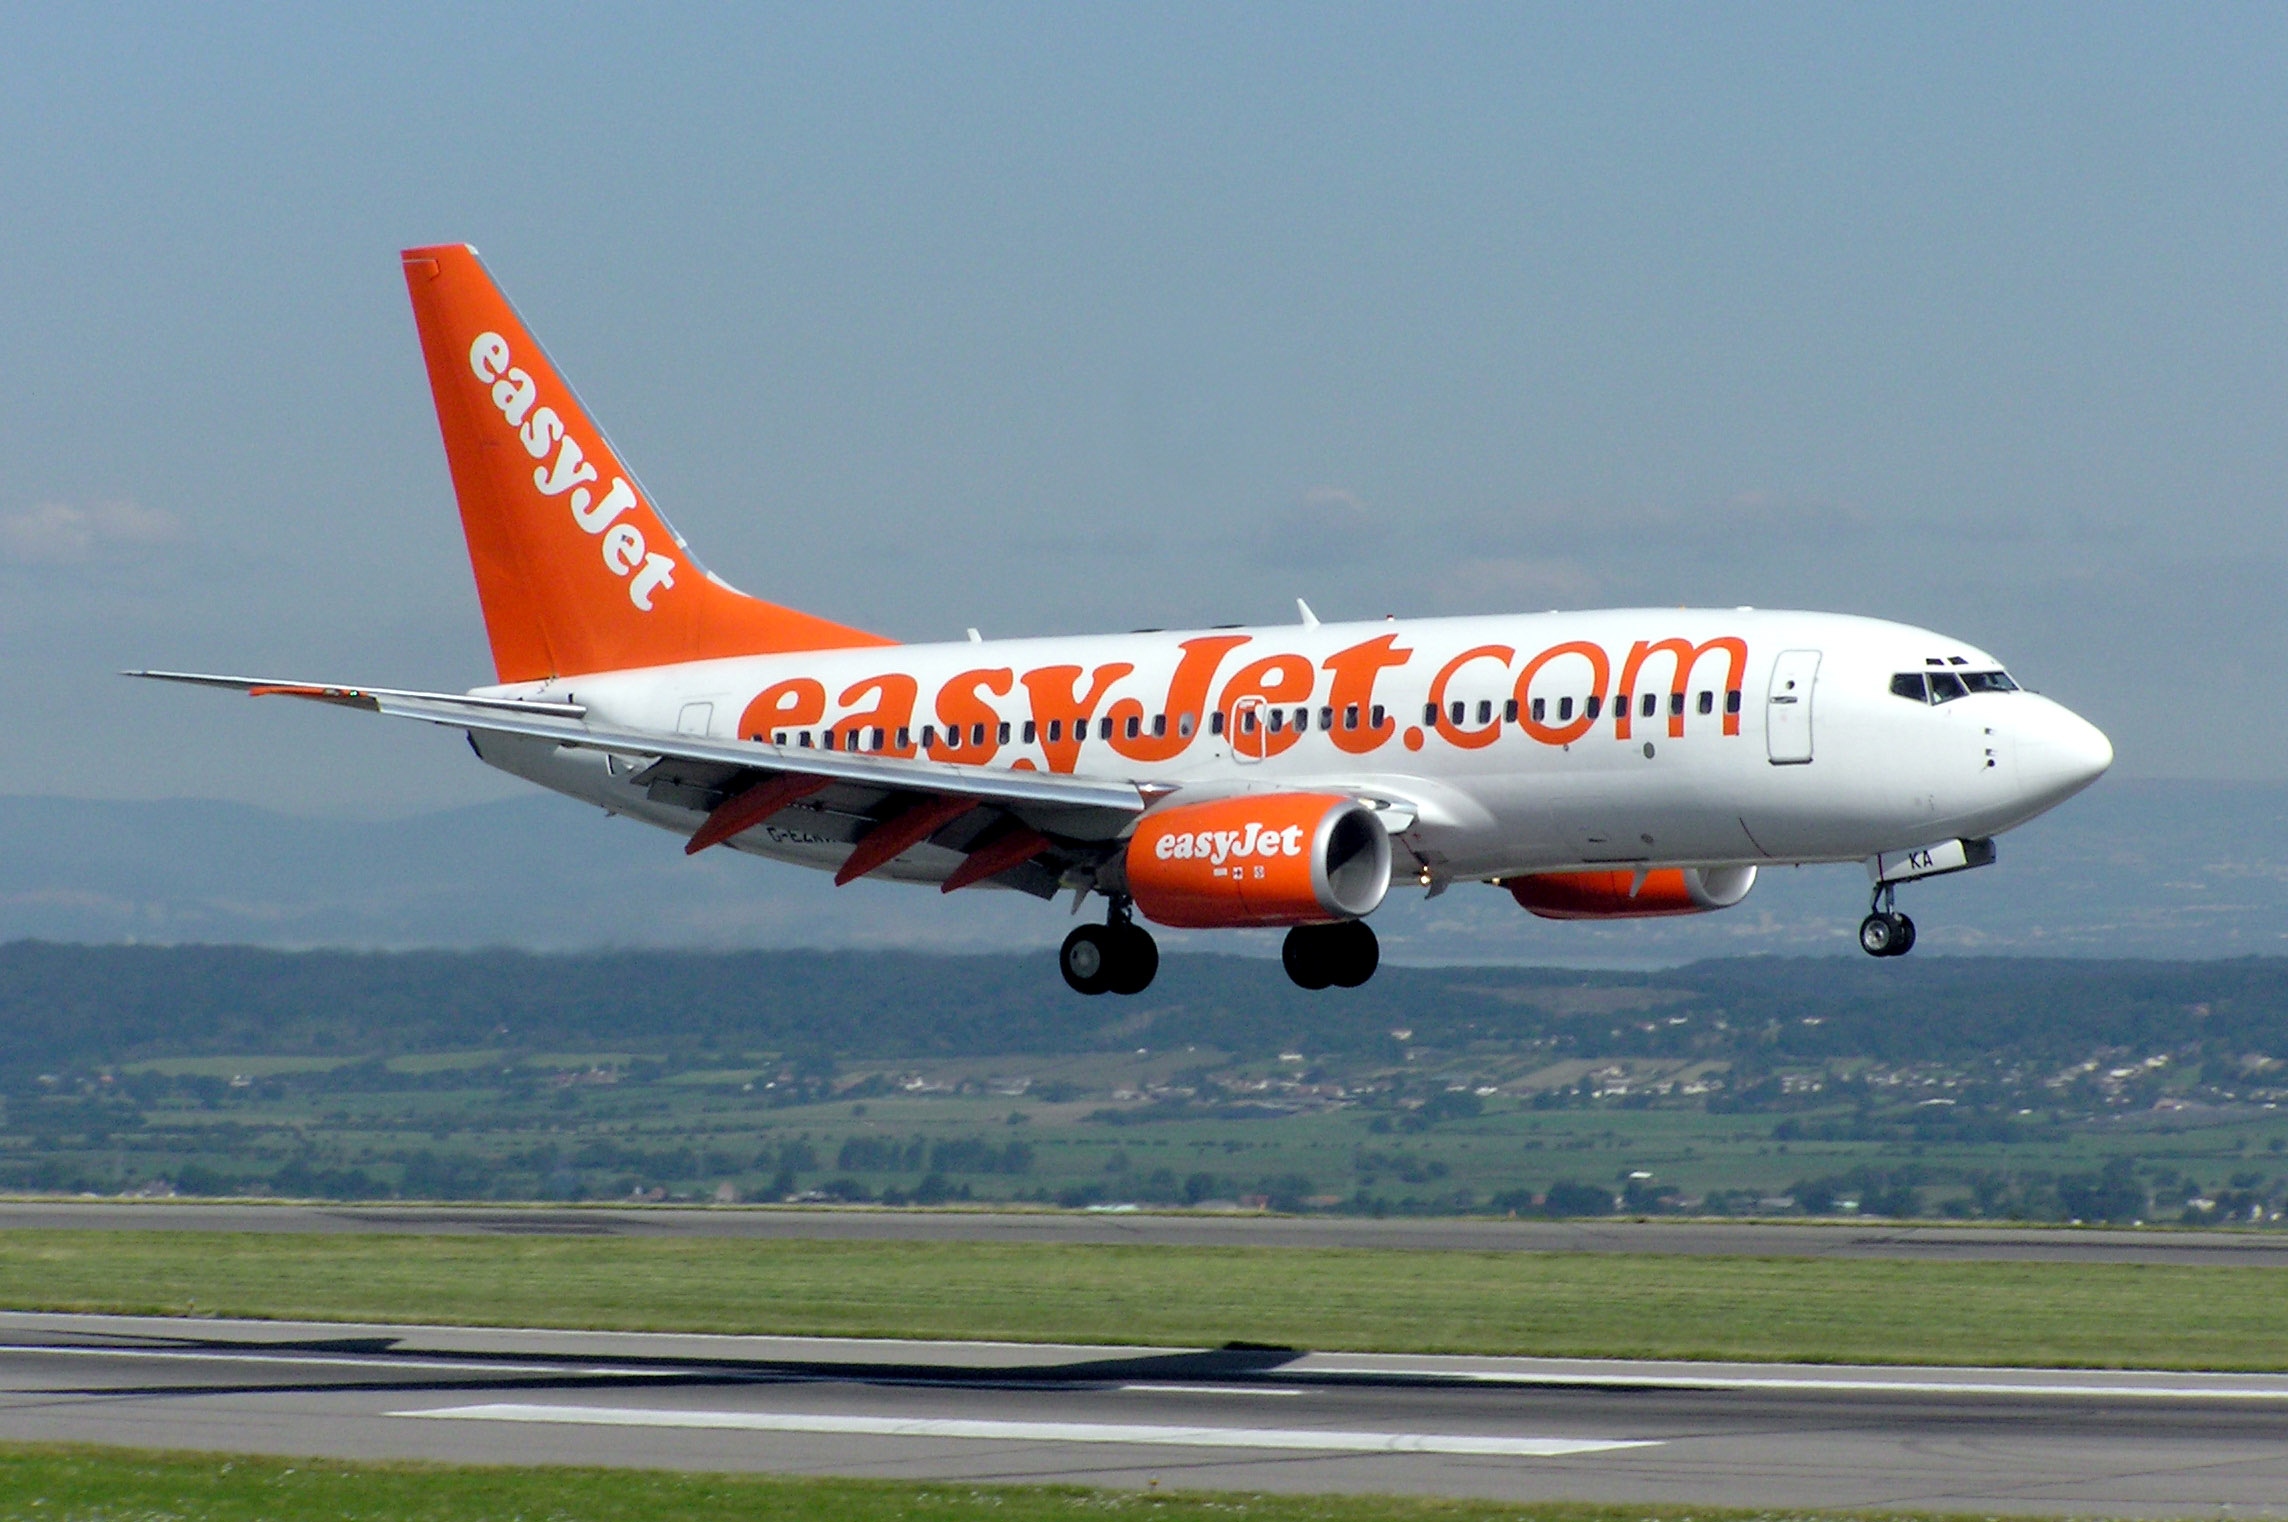 Easyjet